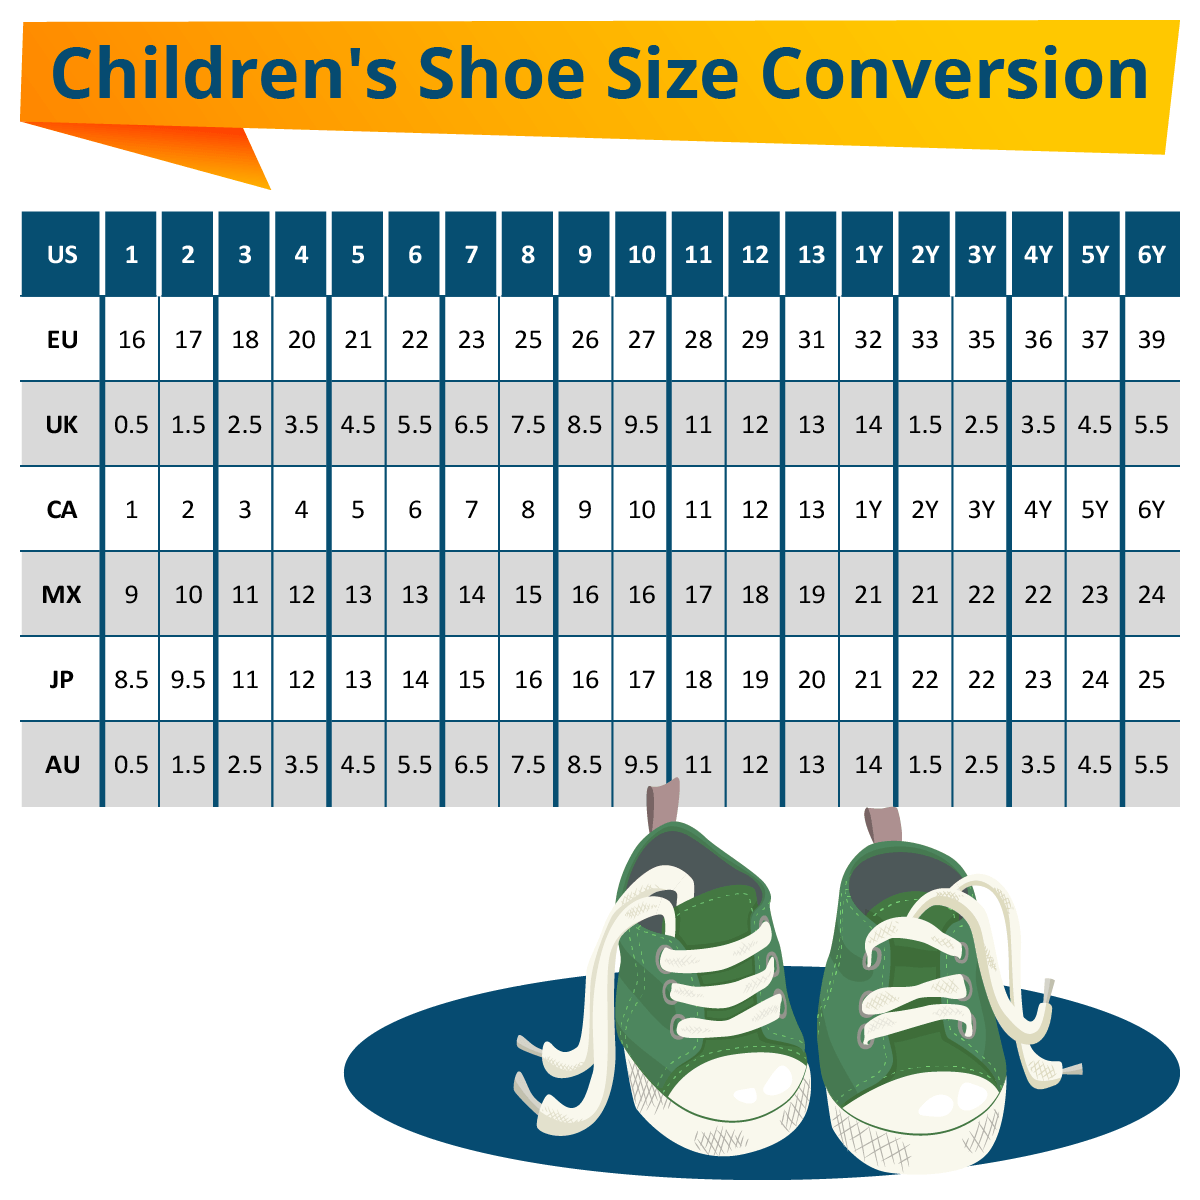 childrens-shoe-size-conversion.png